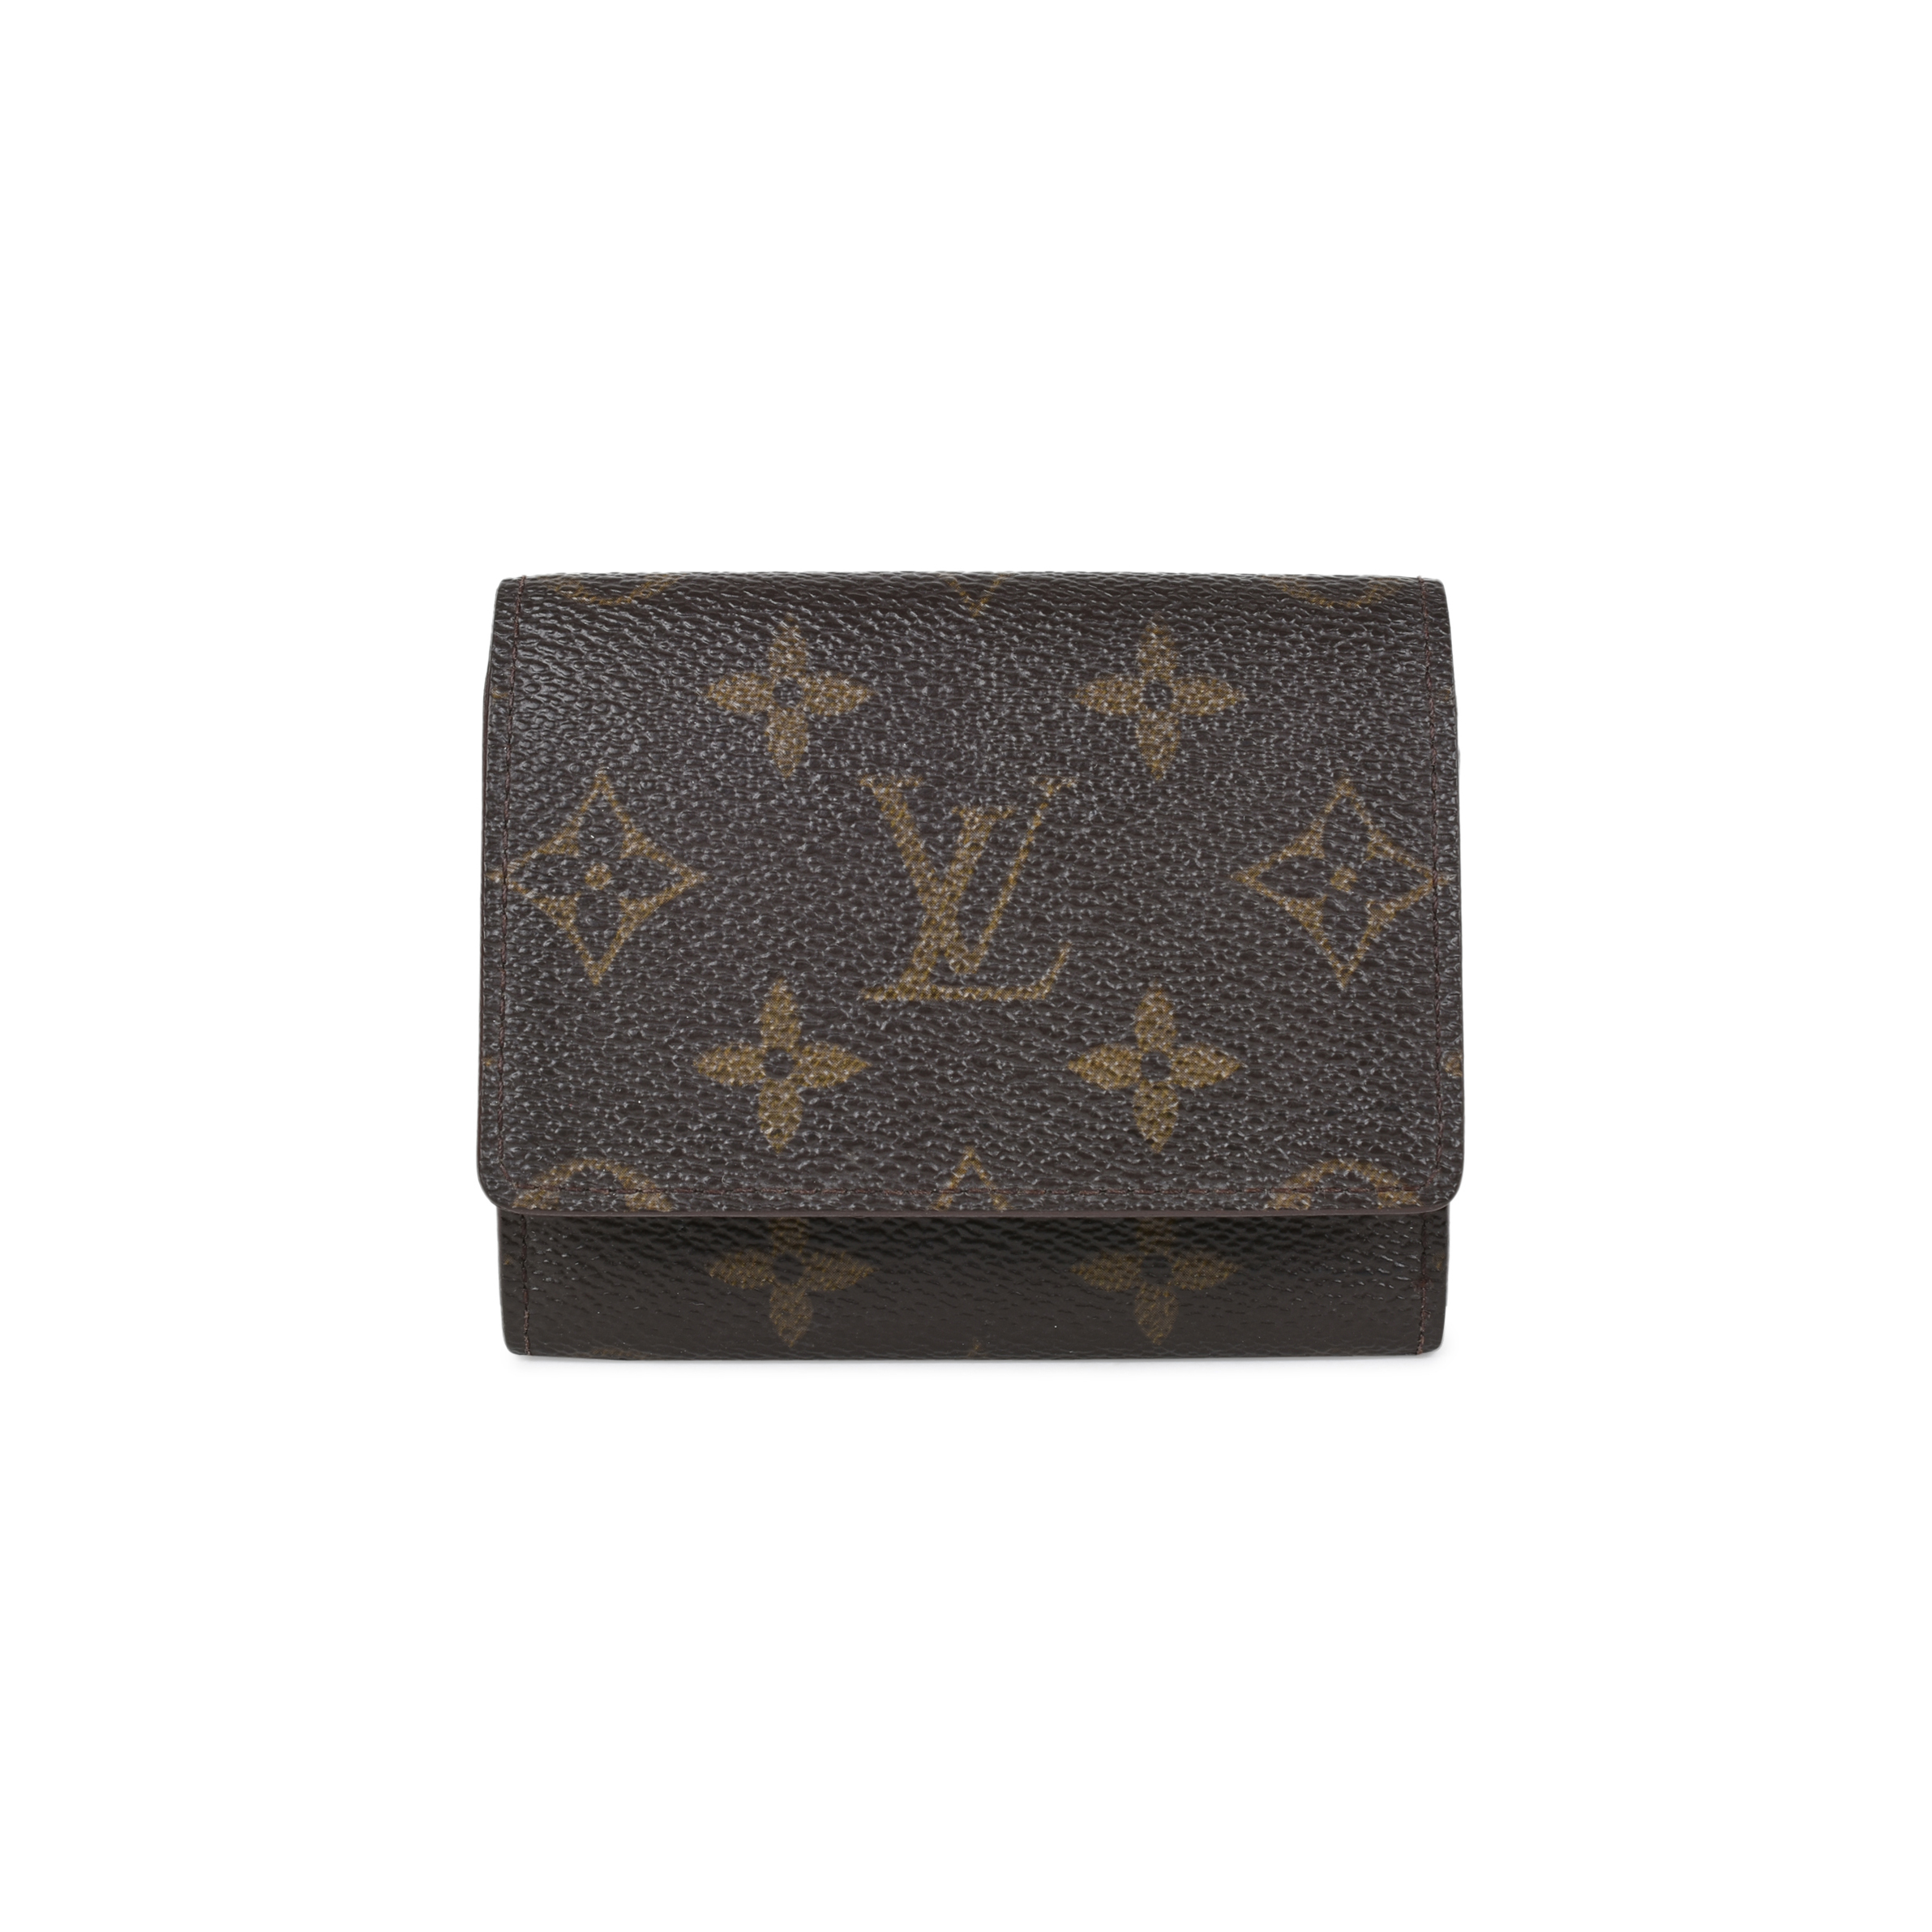 Authentic Pre Owned Louis Vuitton Monogram Business Card Holder Pss